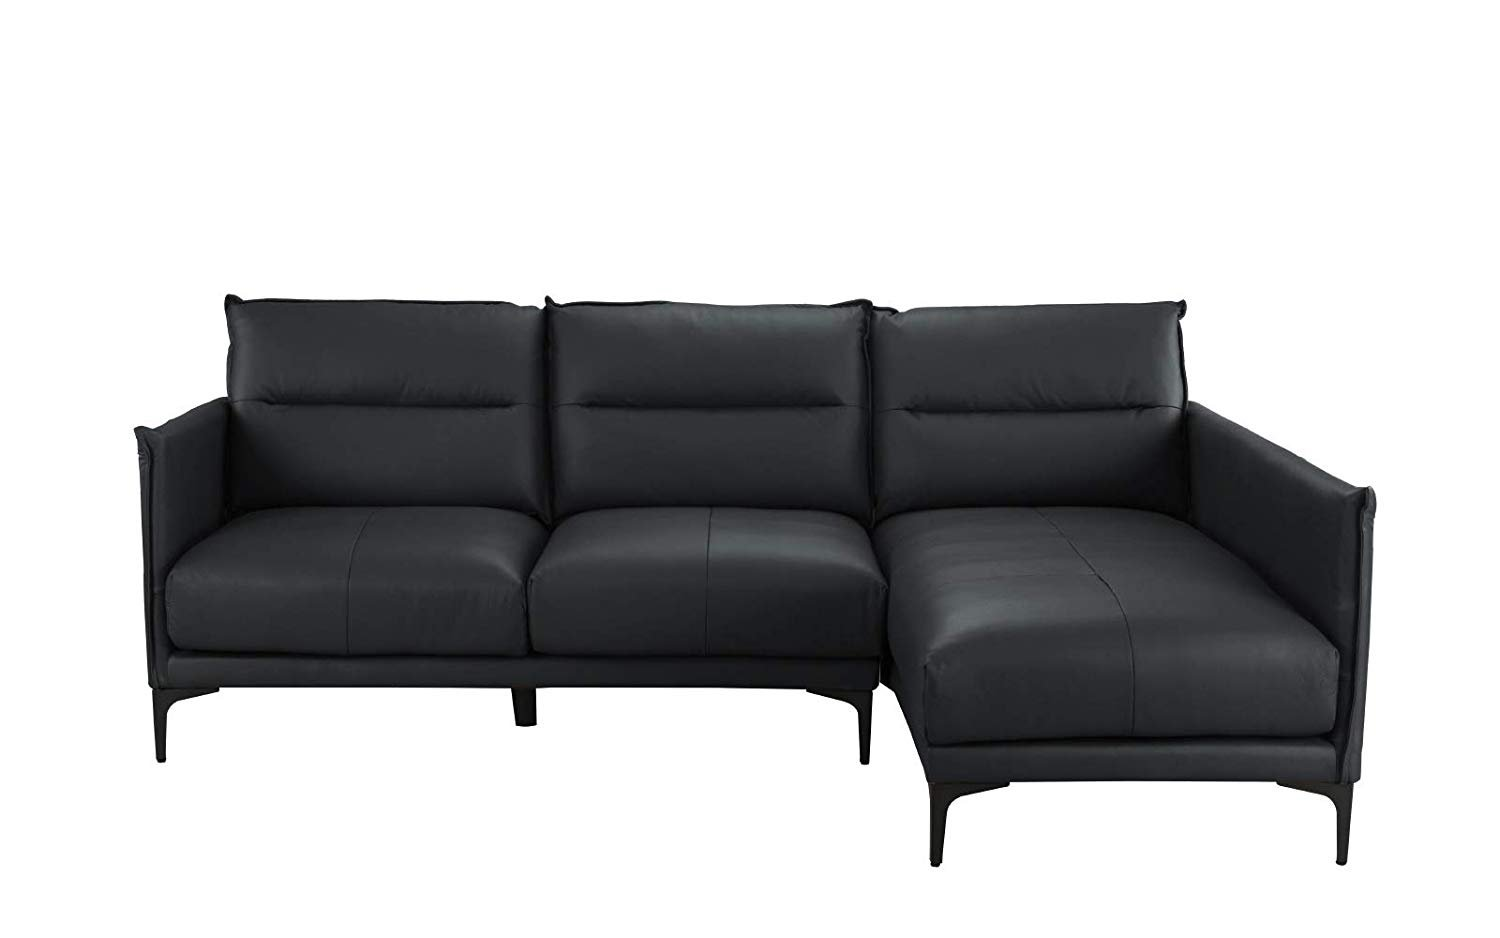 Details about Mid Century Sectional Sofa, L-Shape Couch in Leather Match  Upholstery (Black)